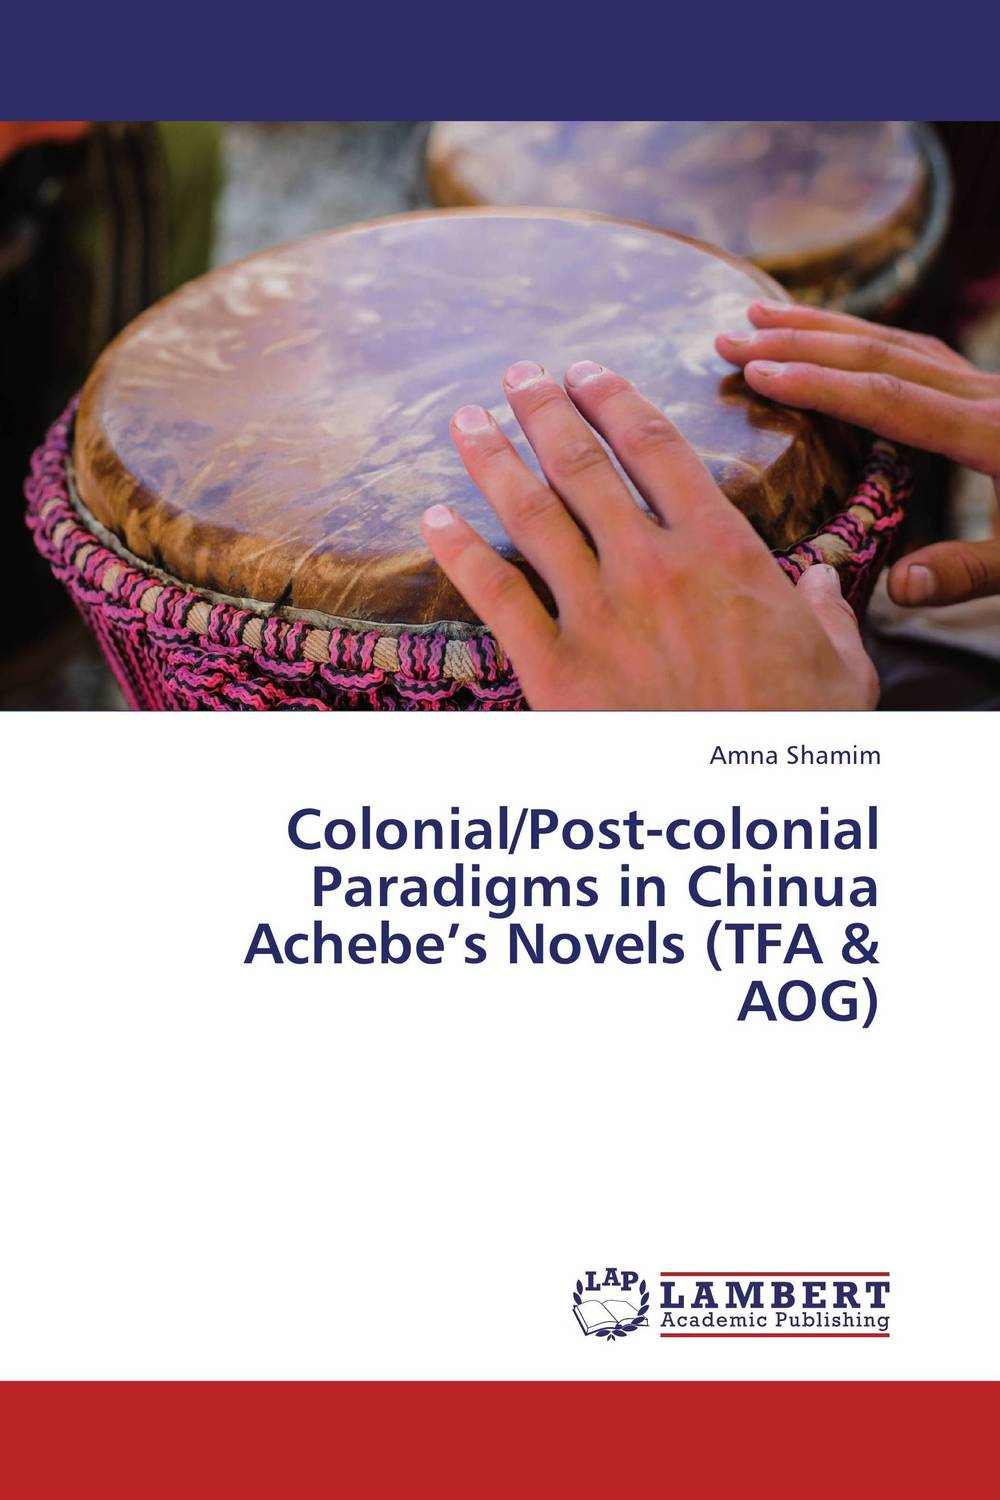 Colonial/Post-colonial Paradigms in Chinua Achebe's Novels (TFA & AOG)